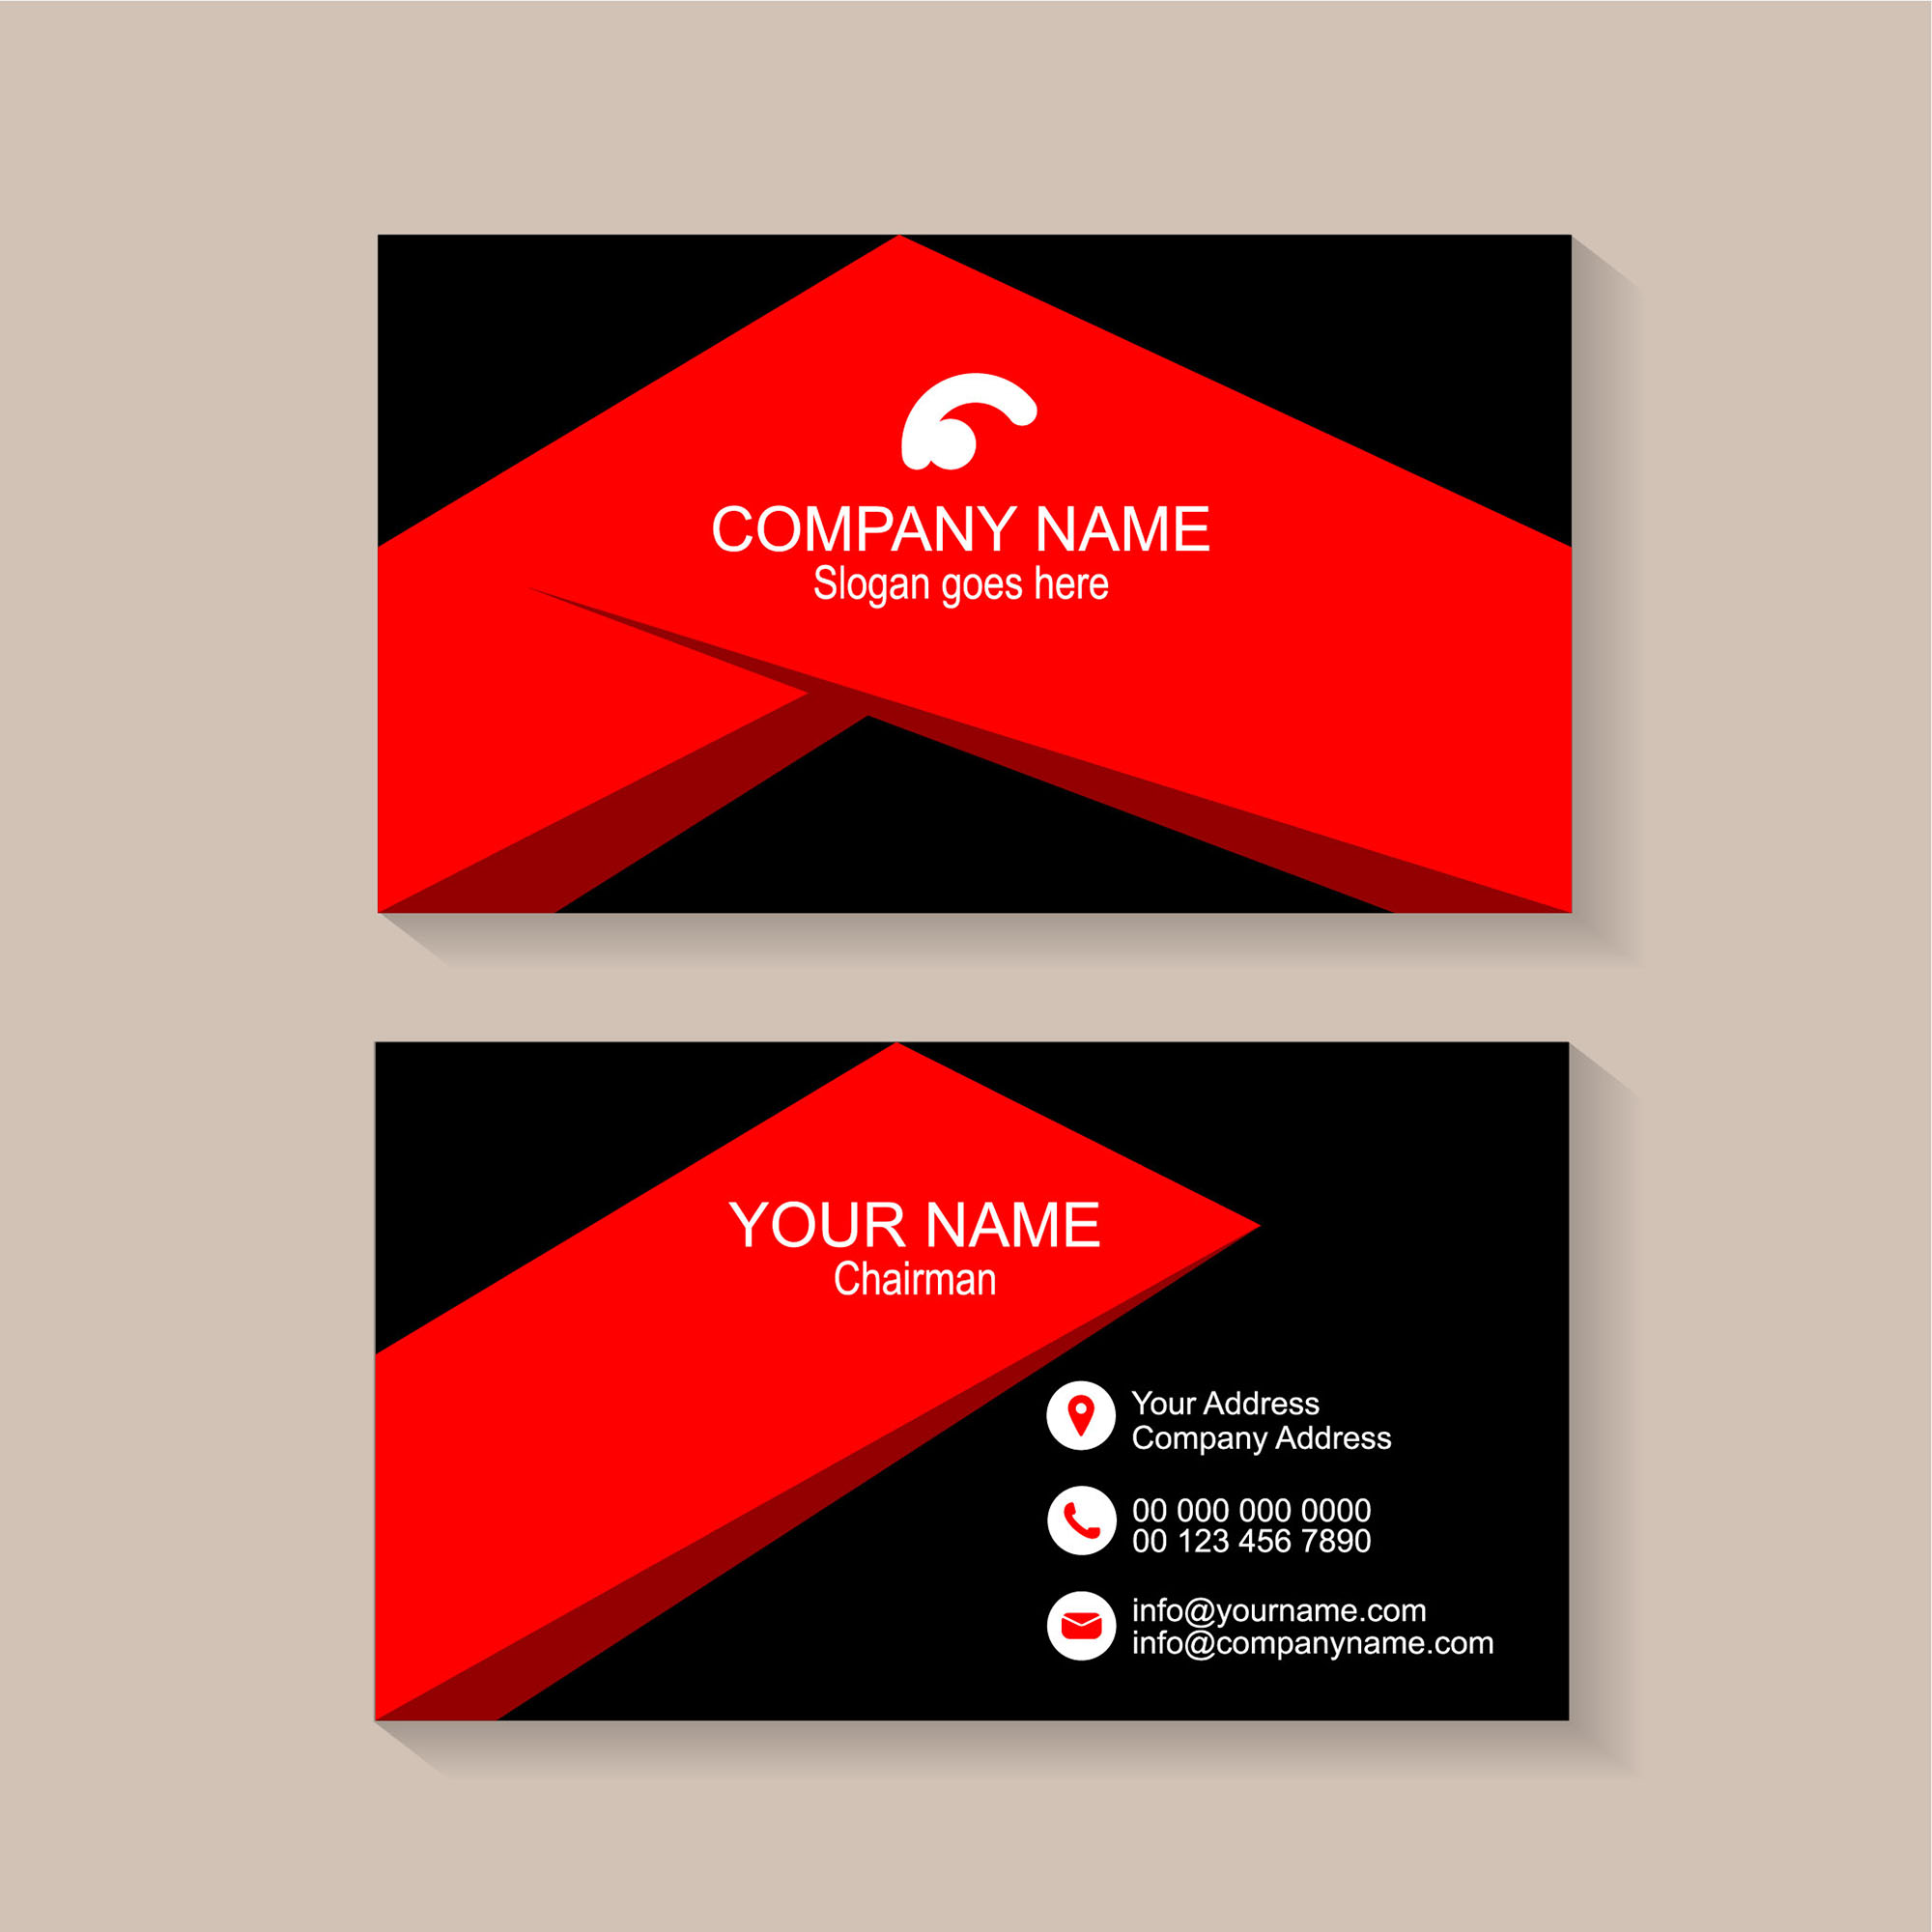 Business card template design free download wisxi business card business cards business card design business card template design templates cheaphphosting Gallery